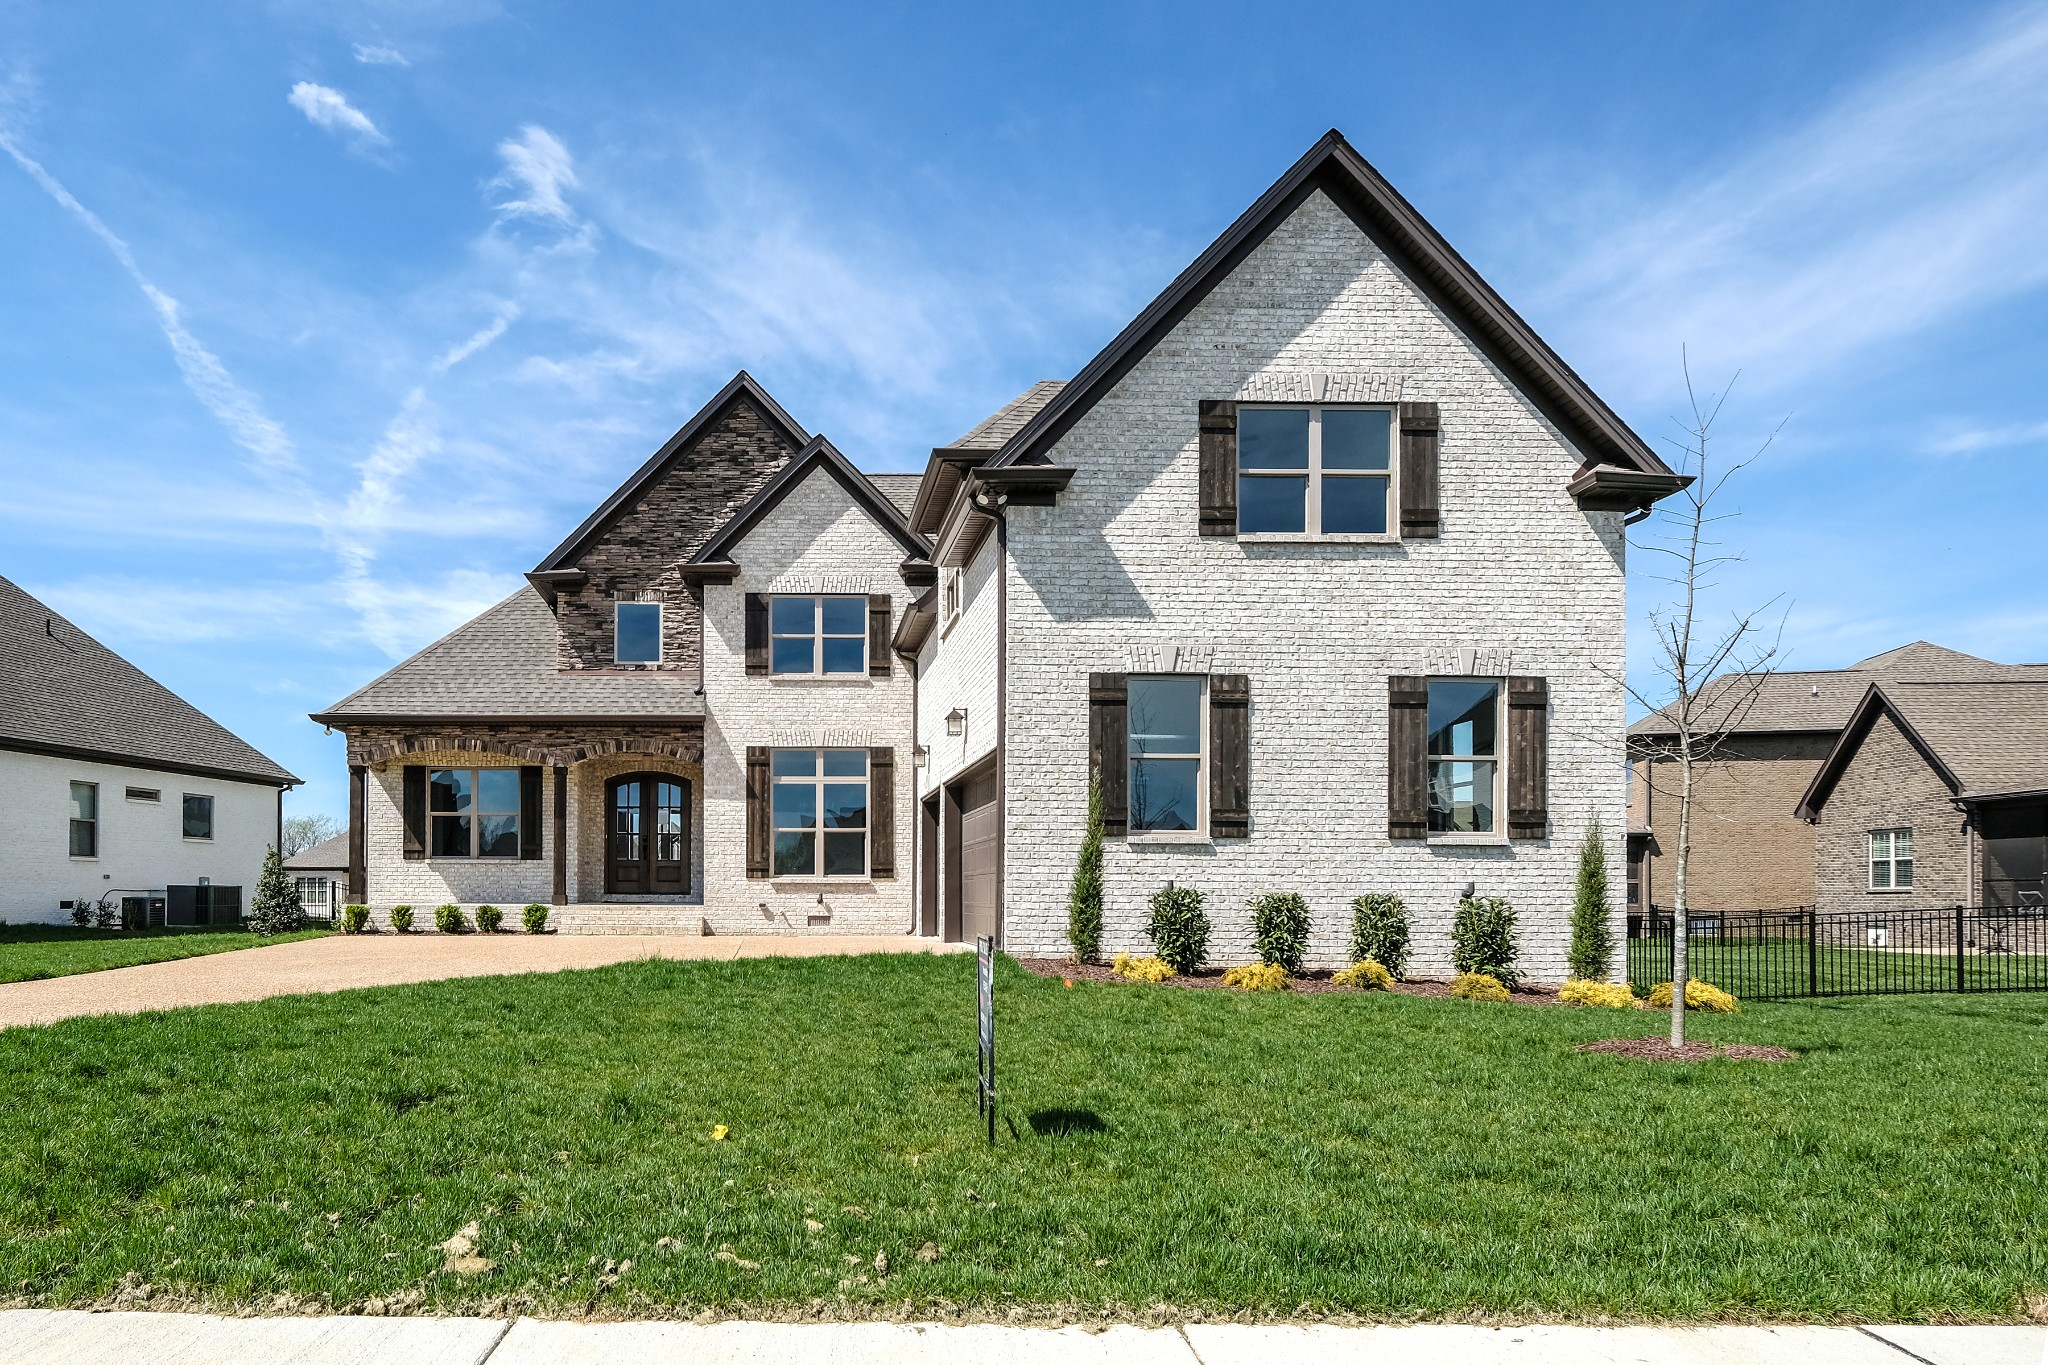 6022 Trout Lane (Lot 254), Spring Hill, Tennessee